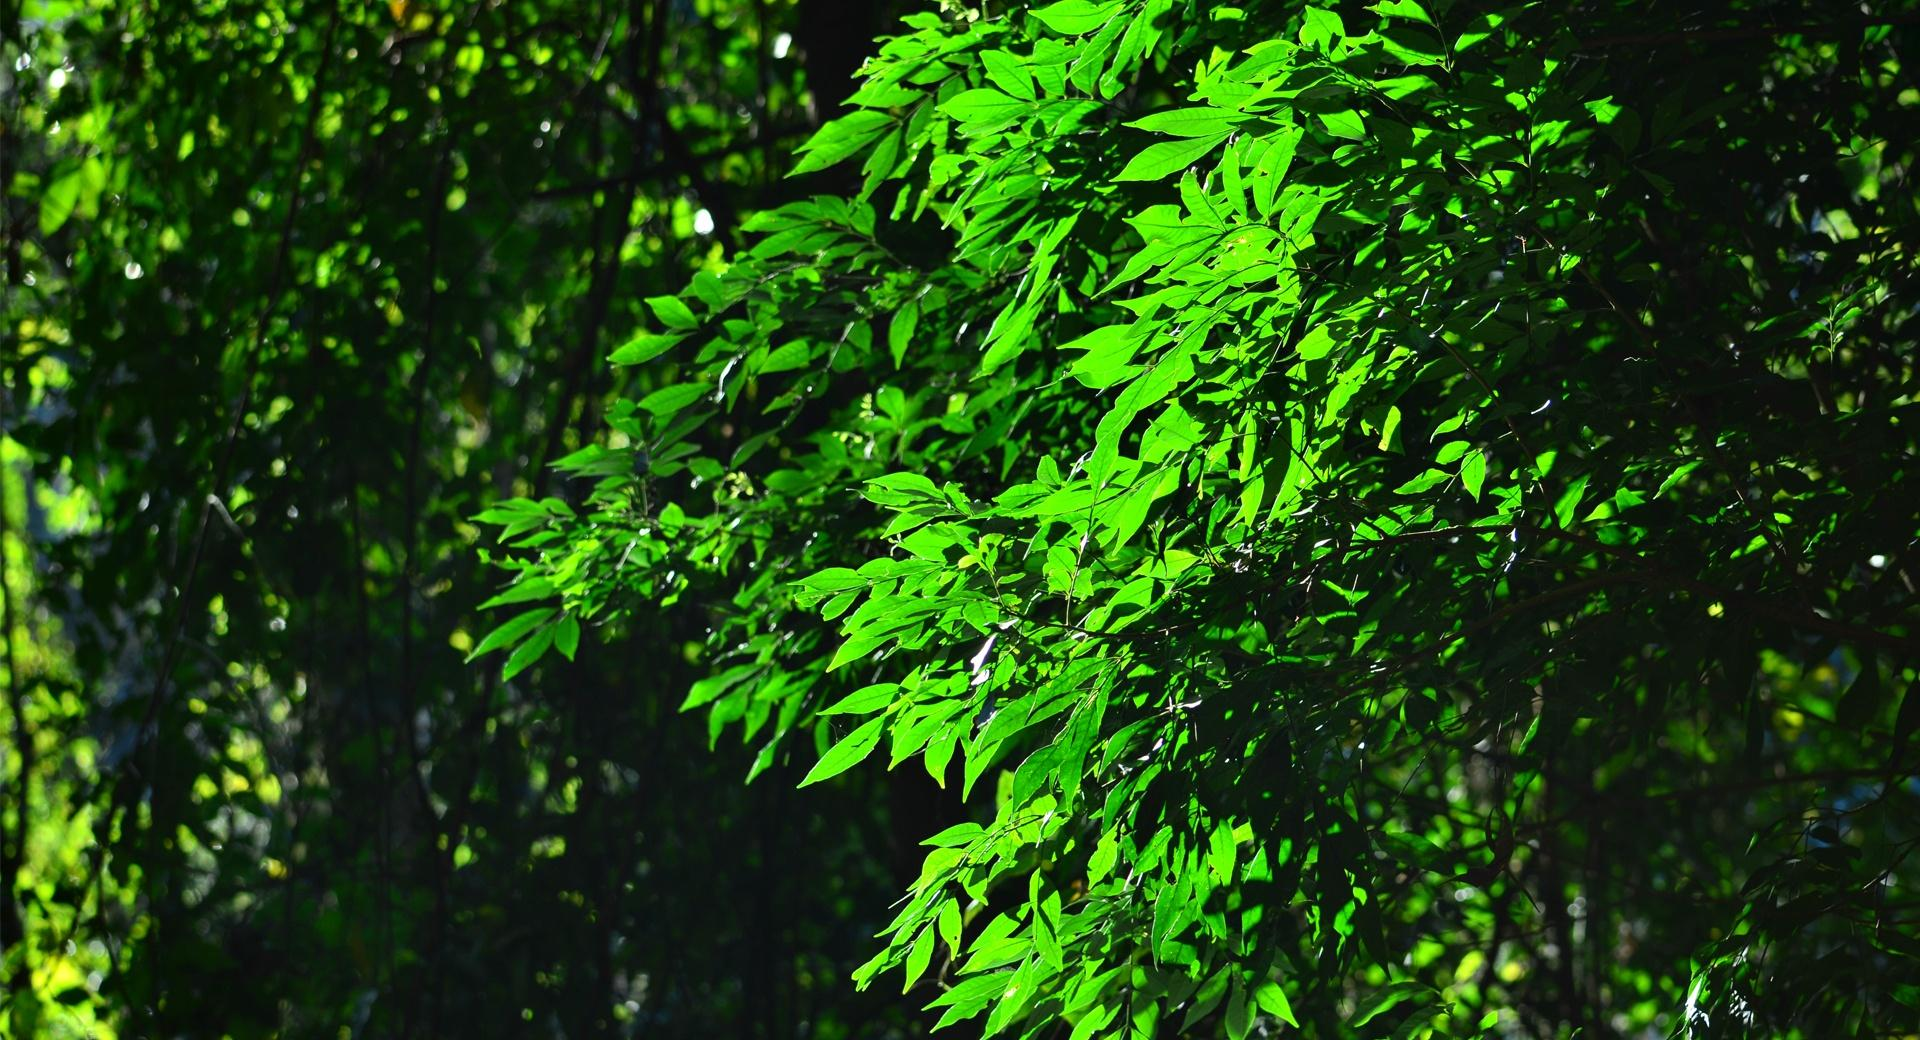 Green Leaves wallpapers HD quality